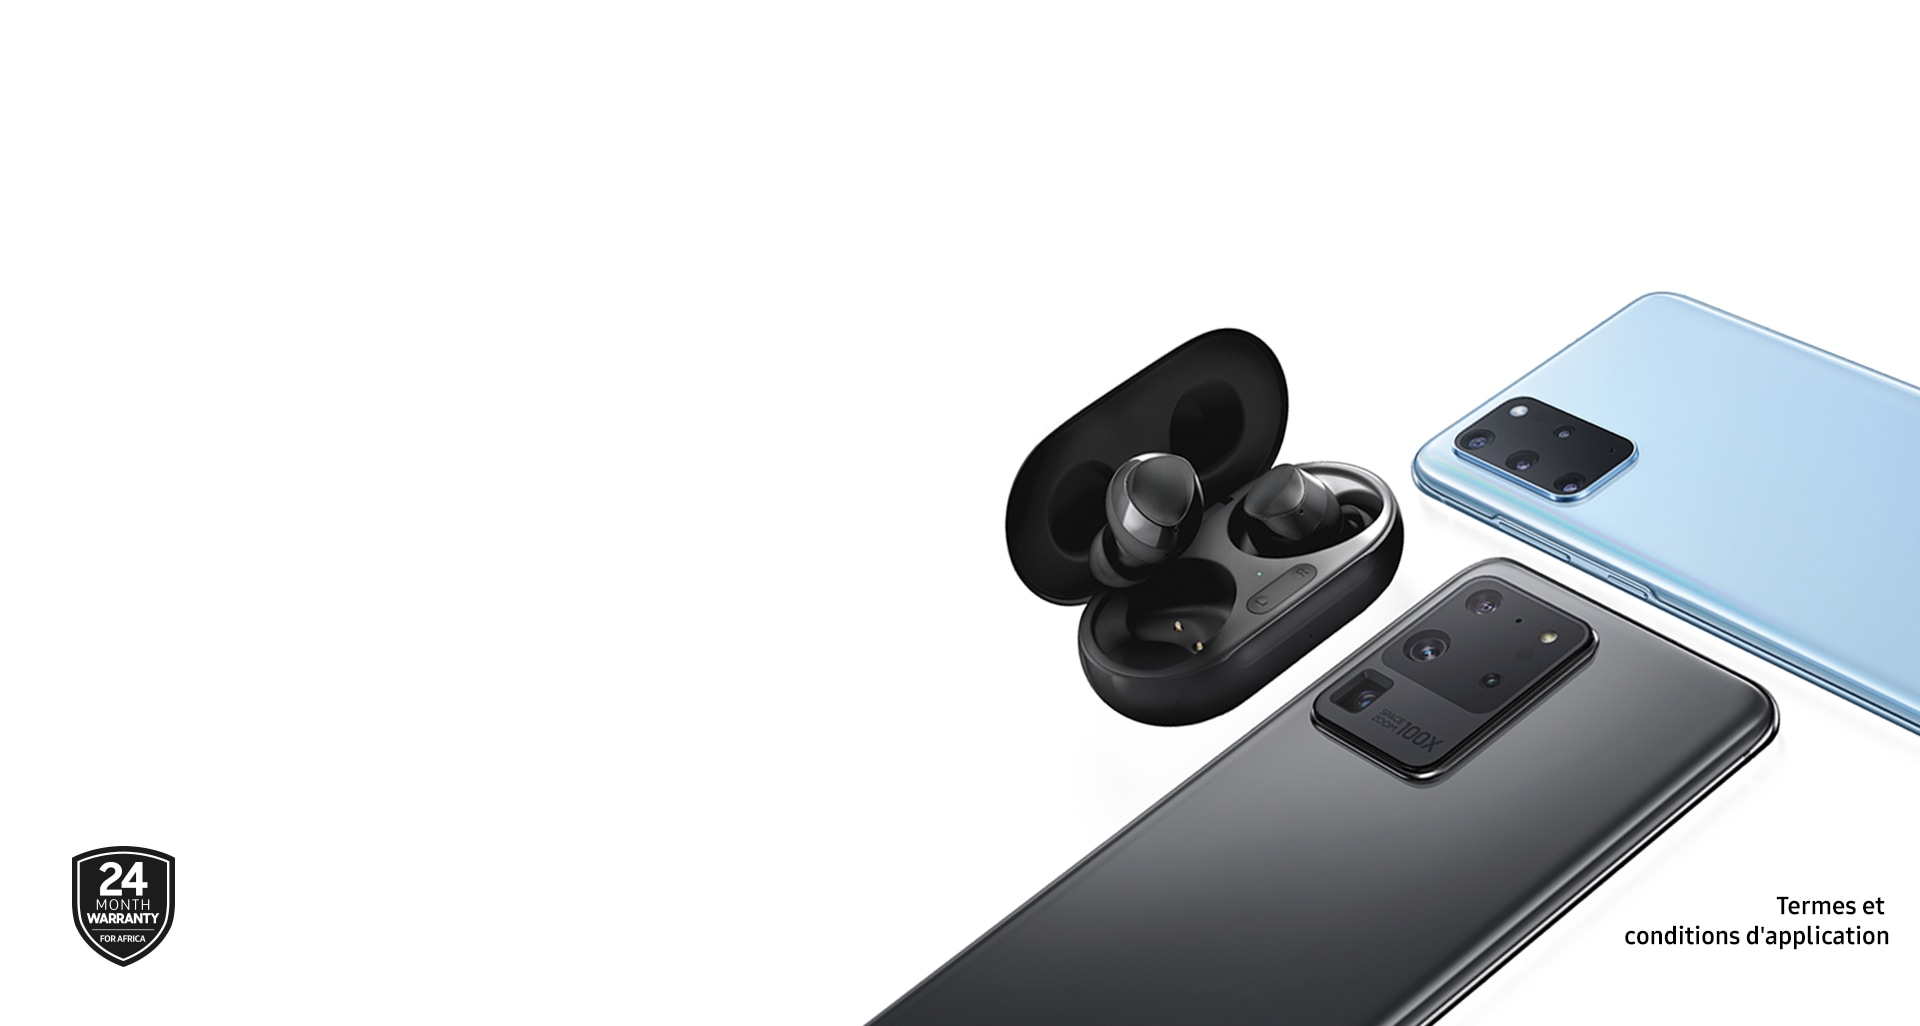 Image shows Samsung Galaxy S20 and Galaxy Buds Plus